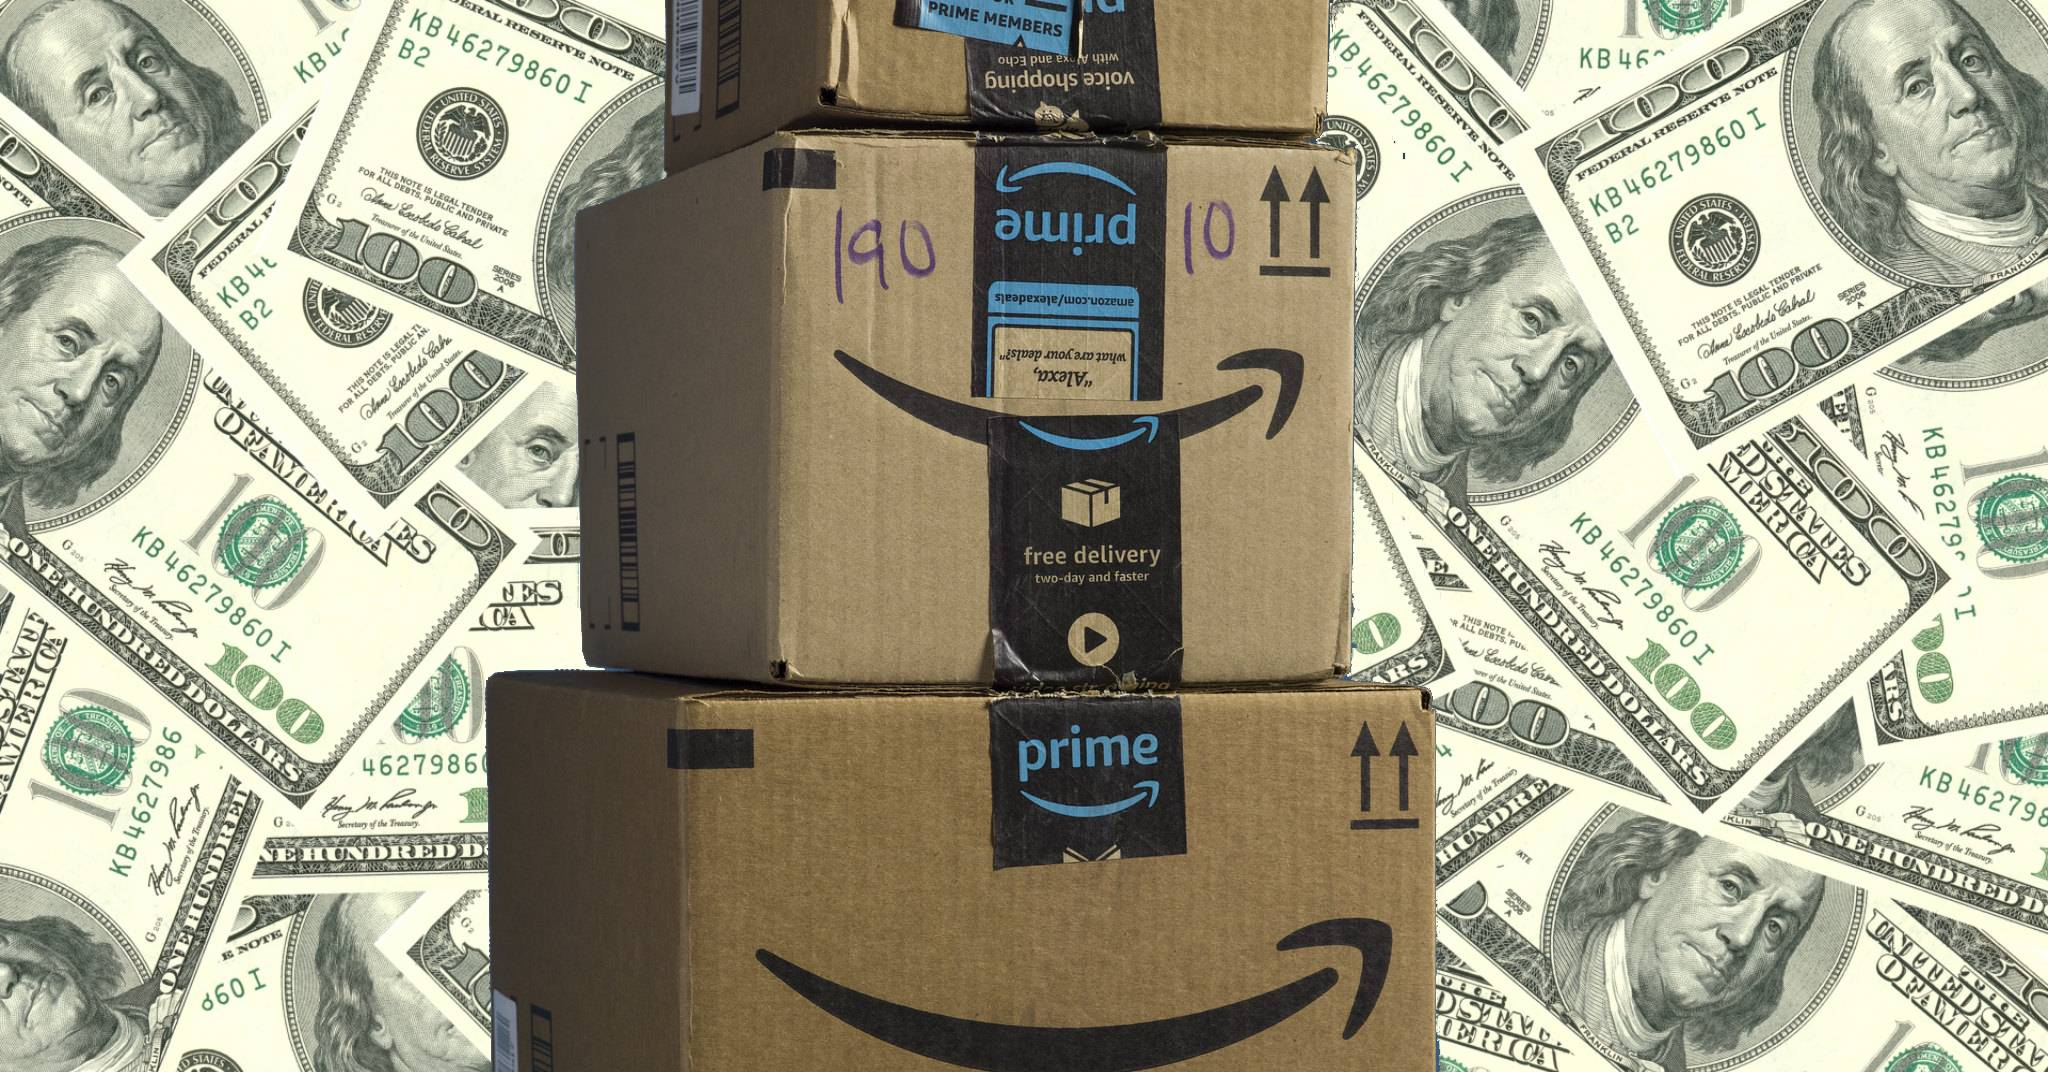 Here's an easy way to find out how much money you've wasted on Amazon